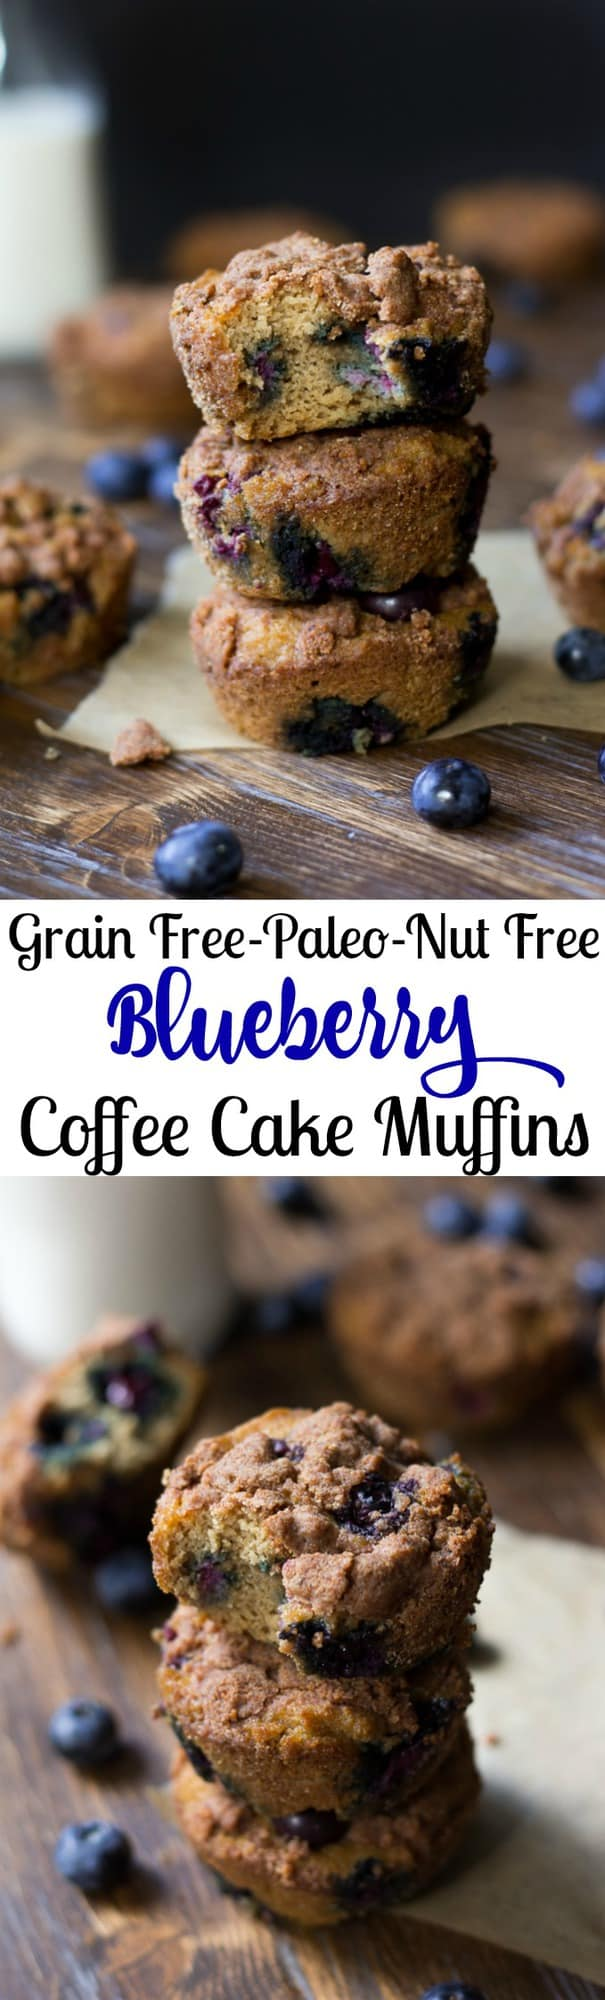 Paleo Blueberry Coffee Cake Muffins